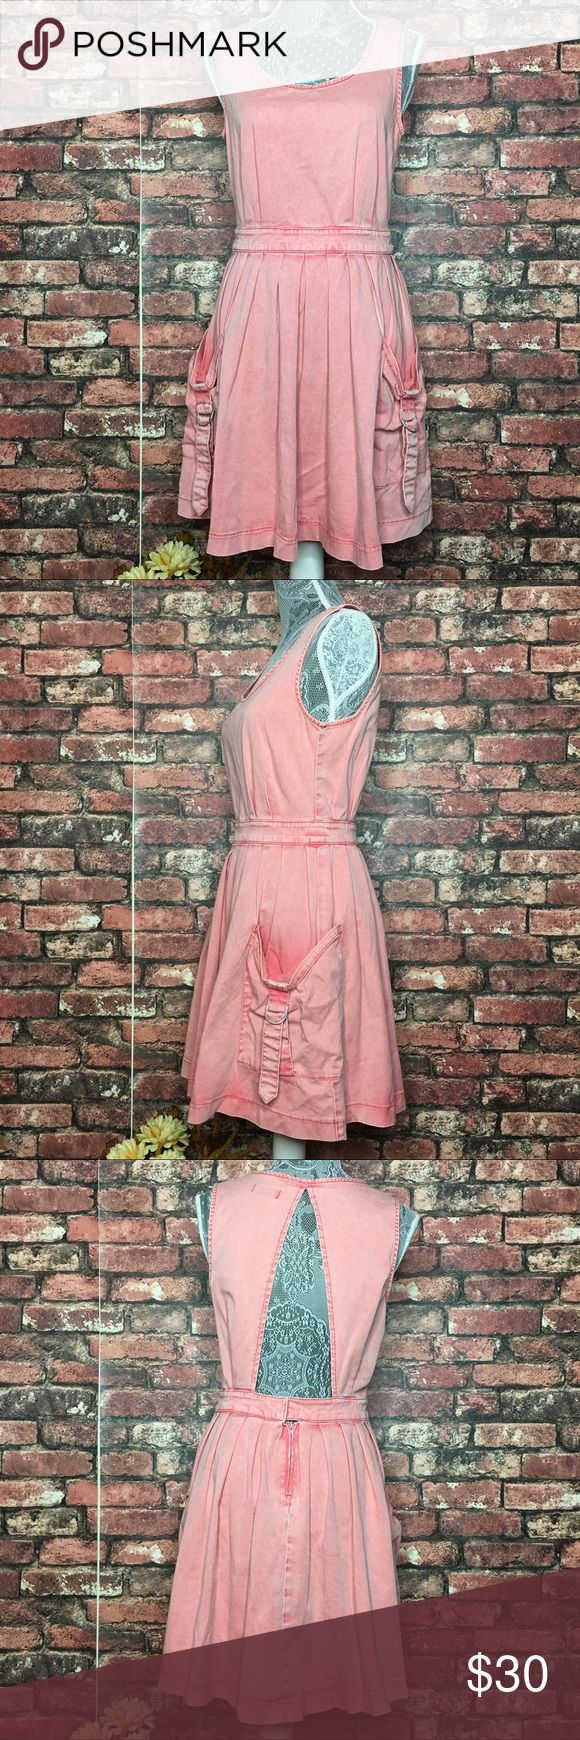 Topshop Pink Acid Wash Dress The perfect stylish pink acid wash dress for festivals and the summer time weather. In great condition. Topshop Dresses